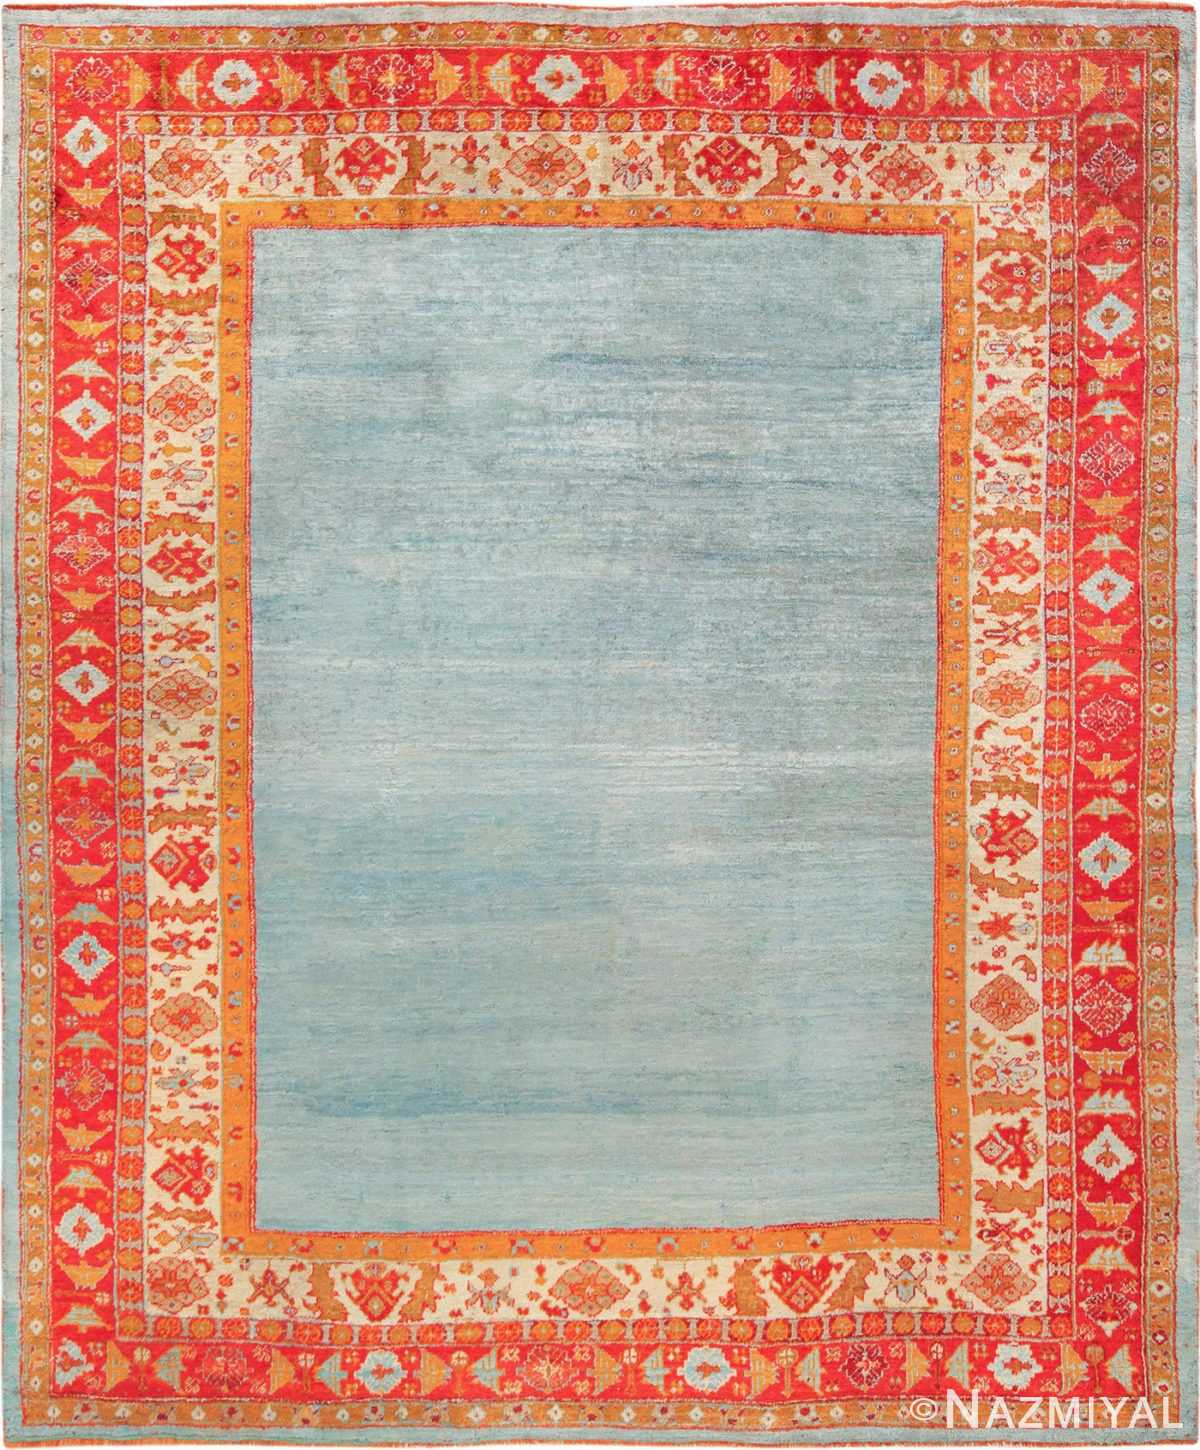 Light Blue Open Field Antique Turkish Angora Oushak Rug 49688 - Nazmiyal